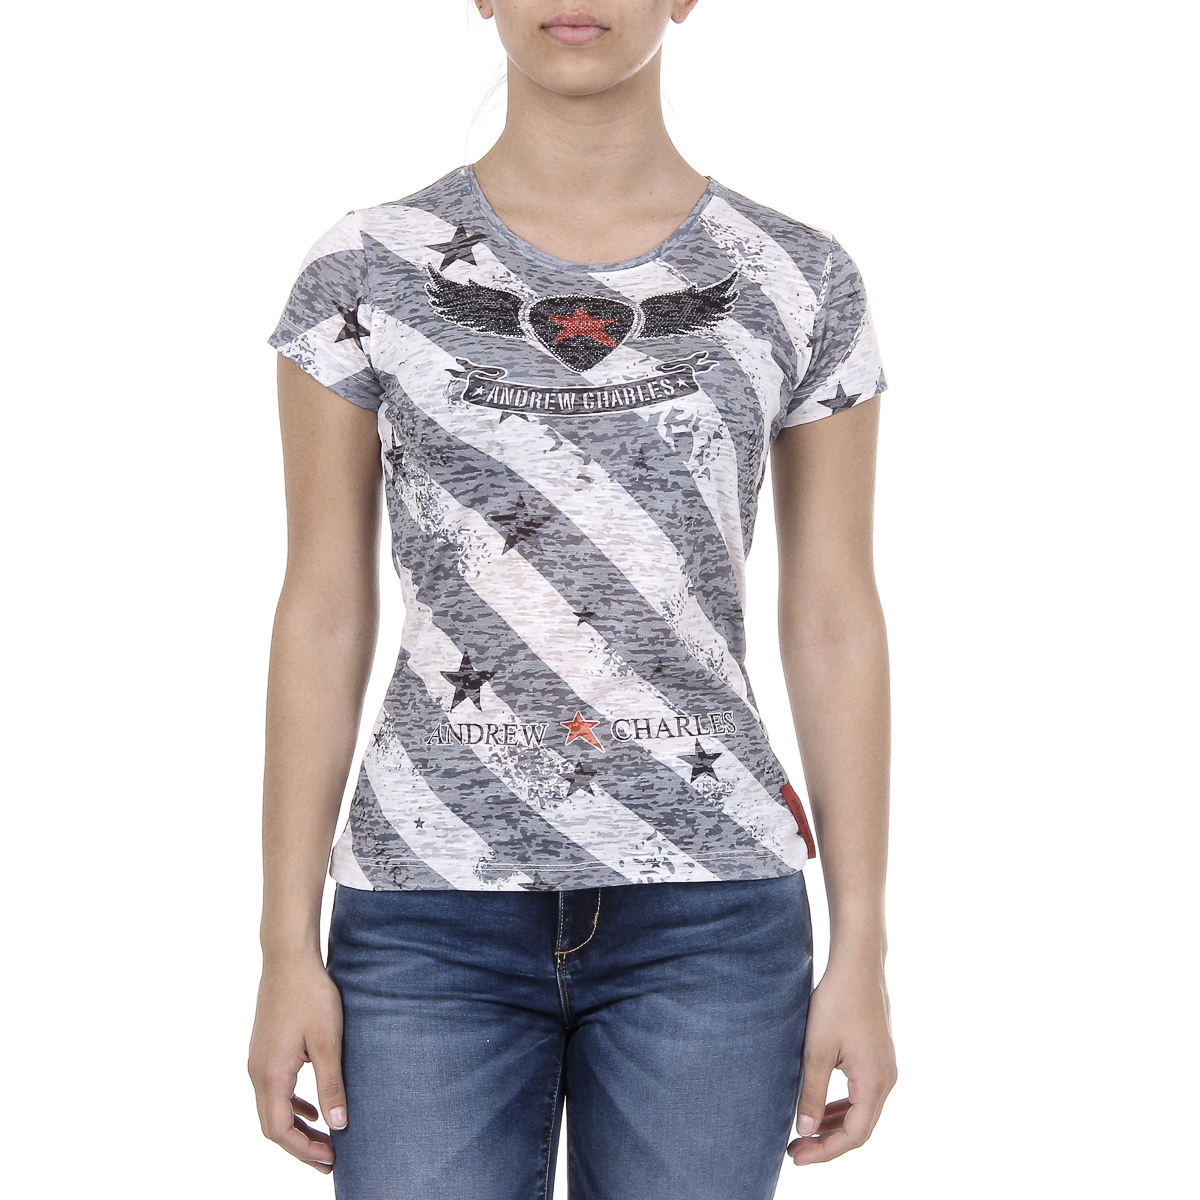 Primary image for Andrew Charles Womens T-shirt Short Sleeves Round Neck Grey CAROLINE